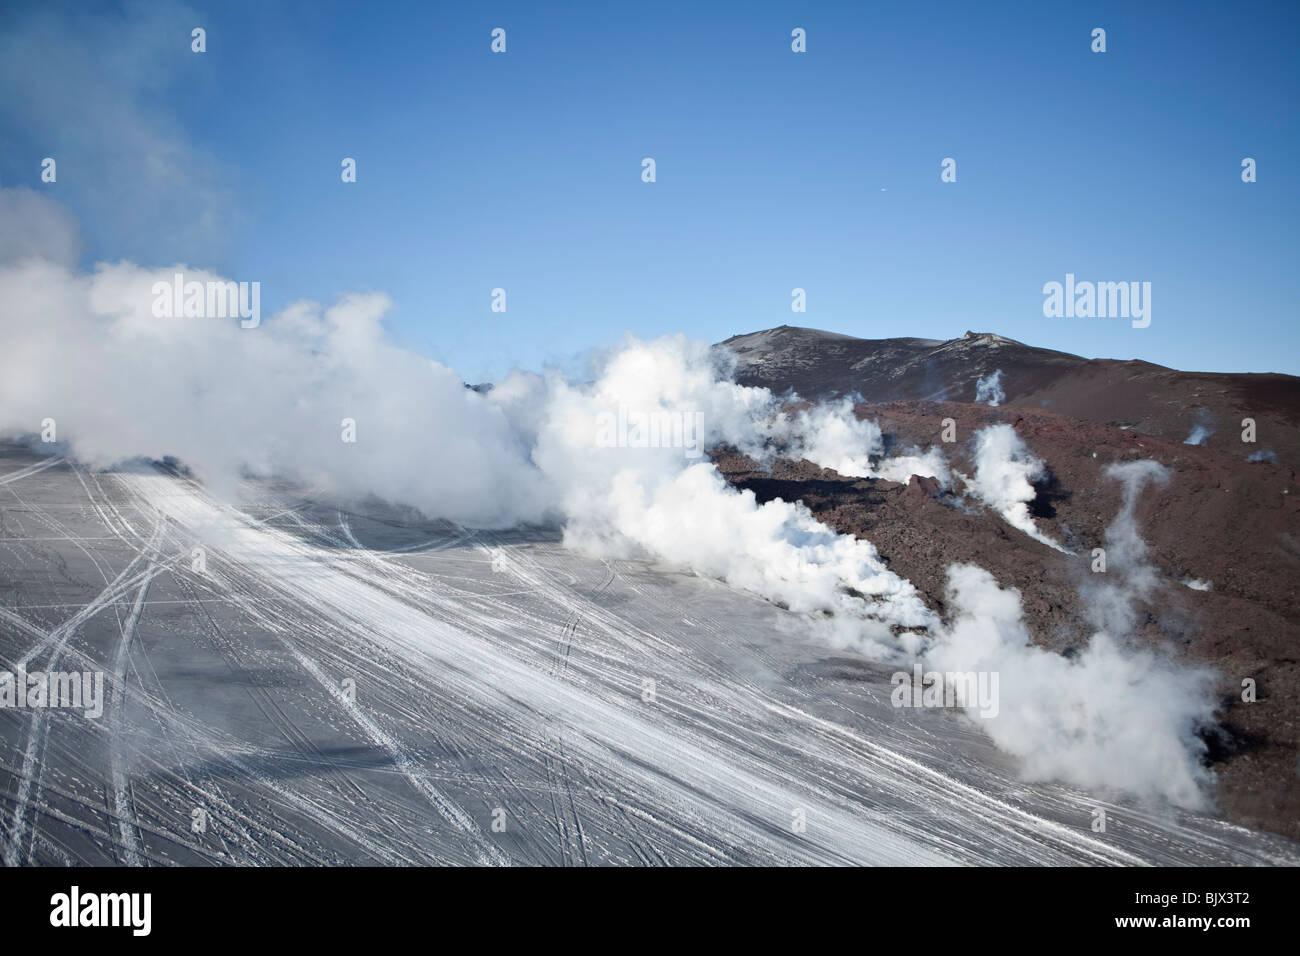 Steam and poisoned gas from the volcanic eruption at Fimmvorduhals, in Eyjafjallajokull, Iceland - Stock Image